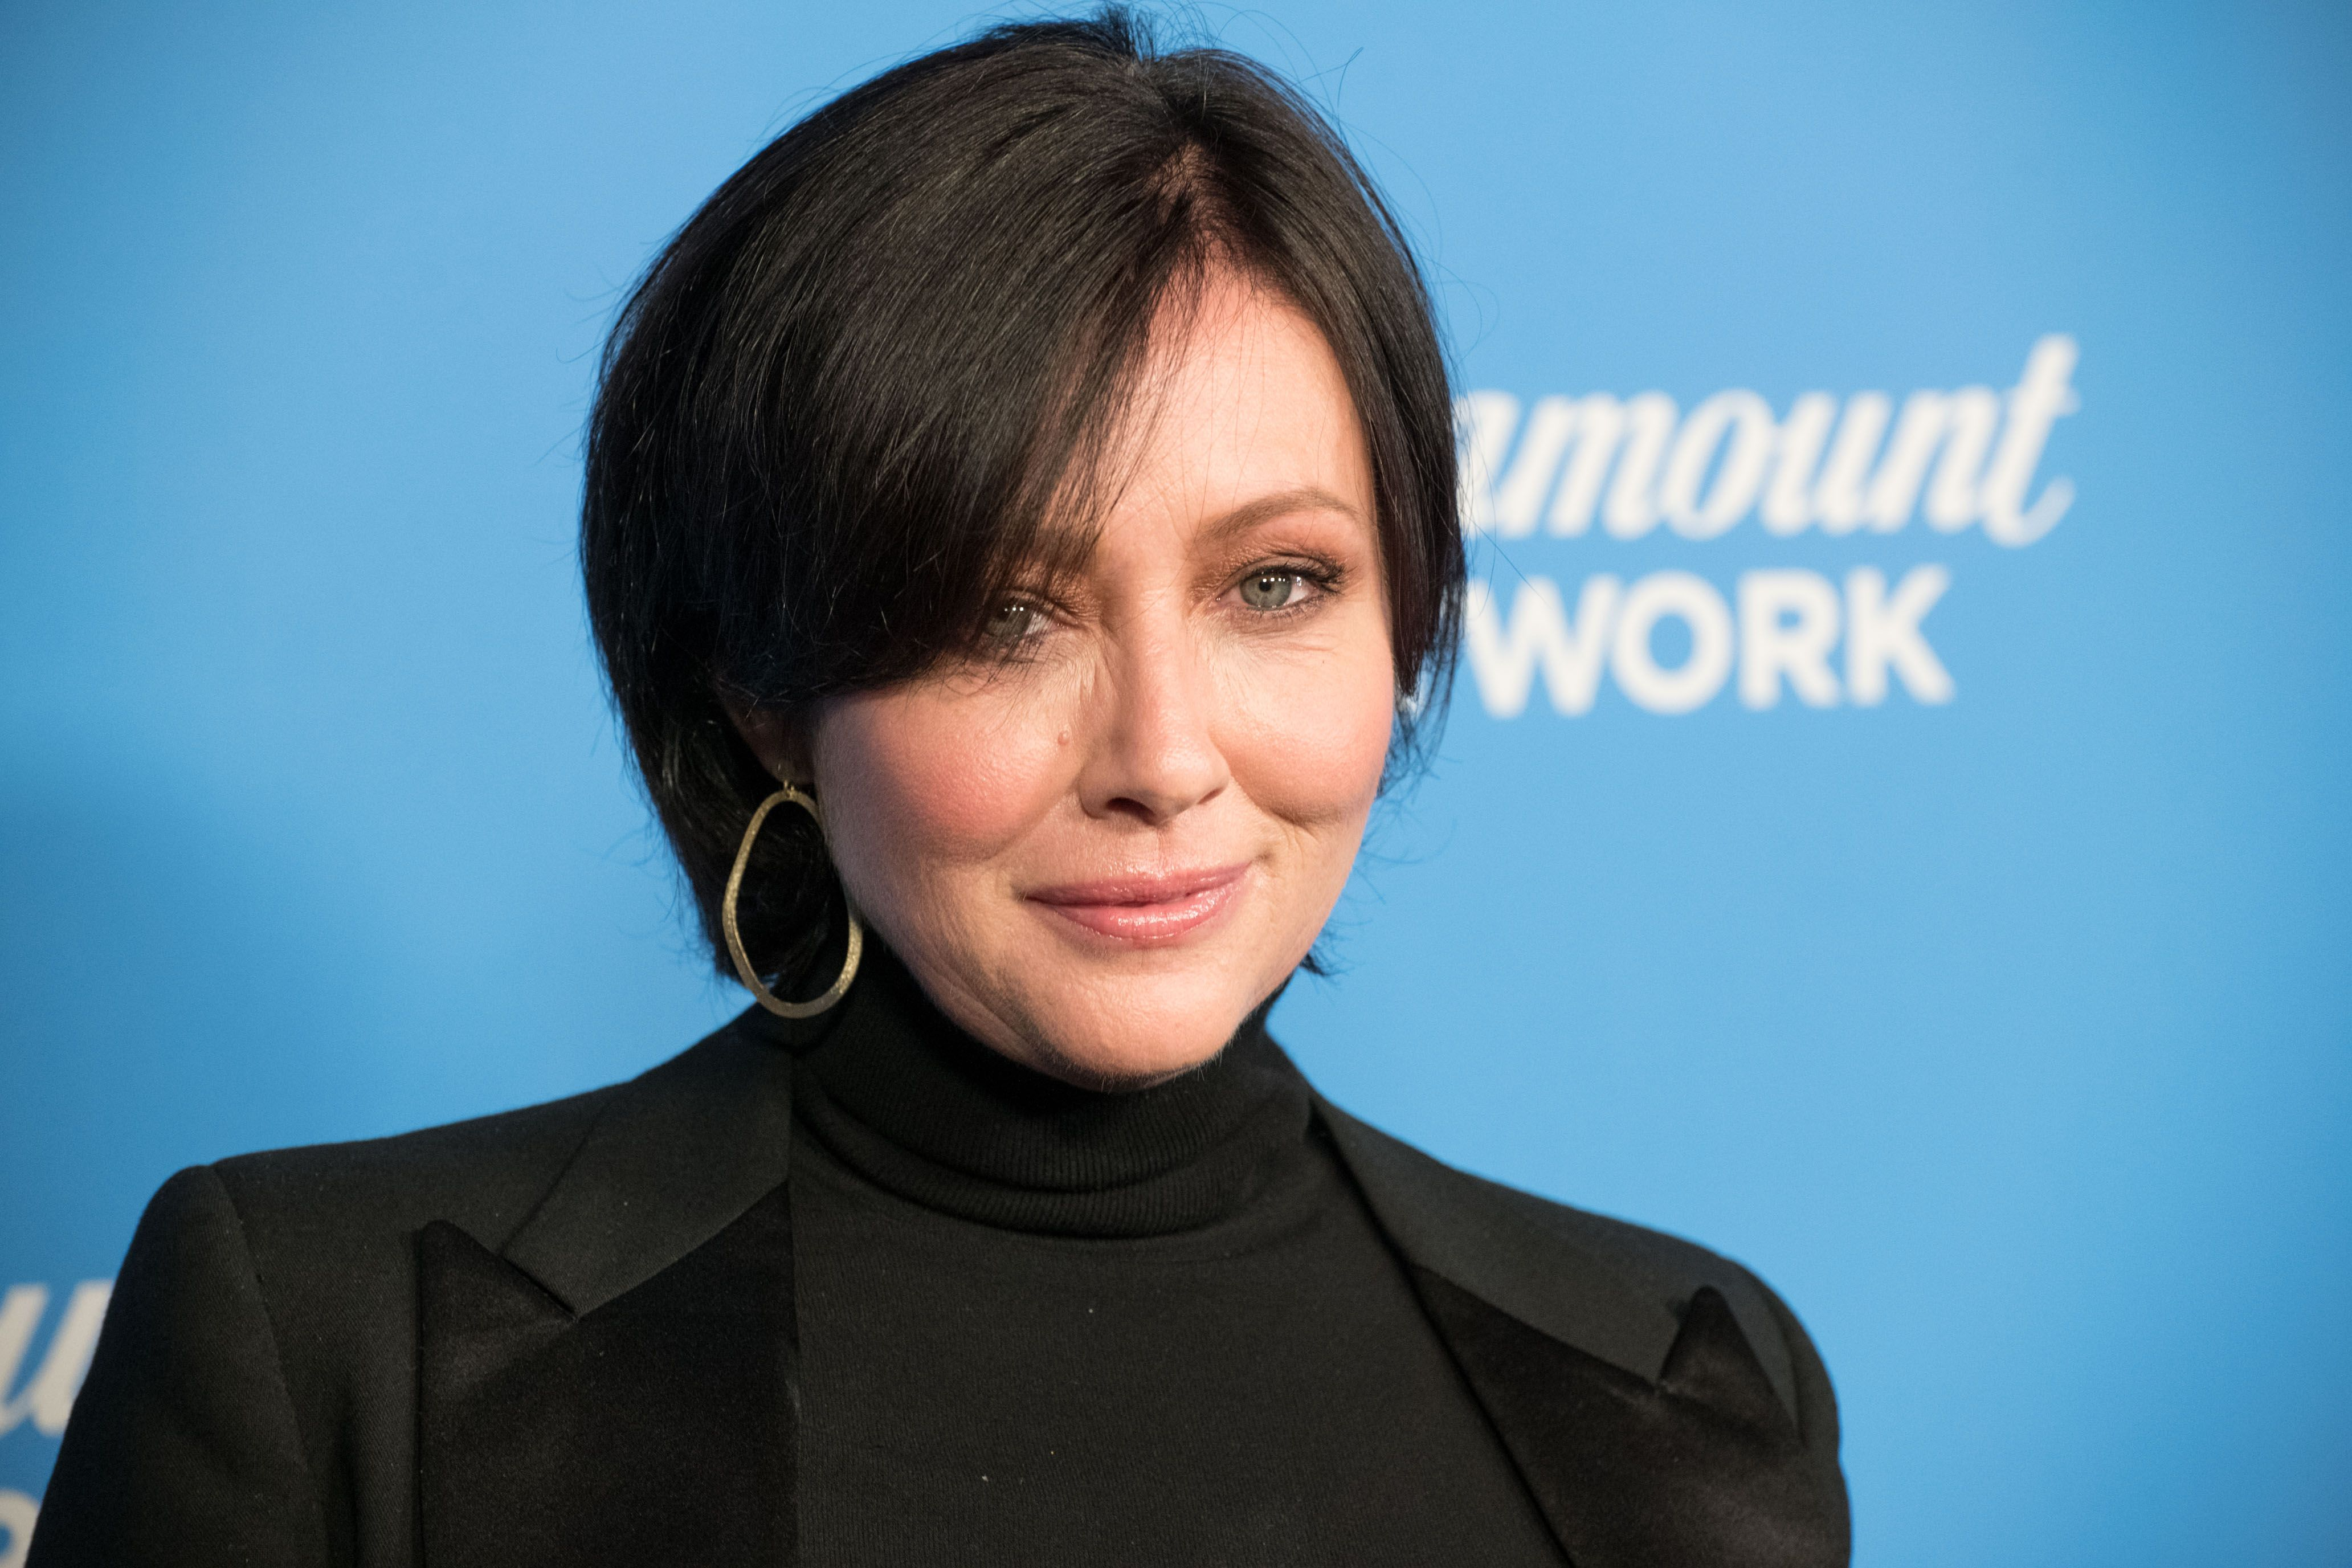 Shannen Doherty Gets Breast Reconstruction Surgery 2 Years After Mastectomy